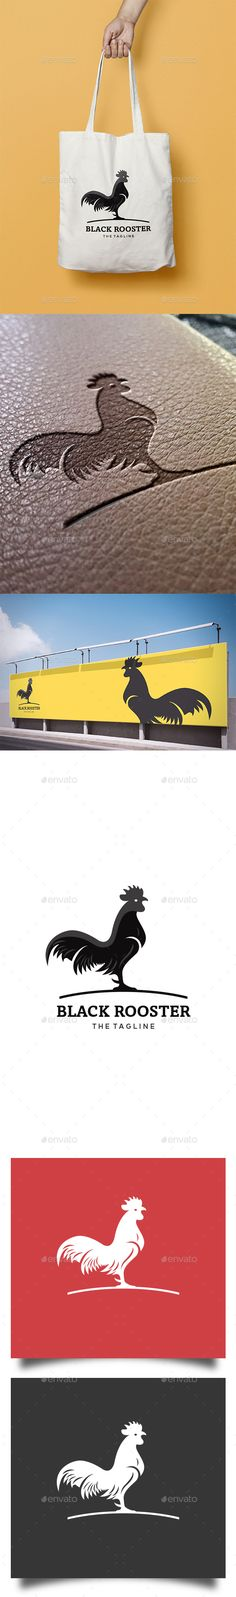 Black Rooster Logo — Vector EPS #vintage #masculine • Available here → https://graphicriver.net/item/black-rooster-logo/16796369?ref=pxcr